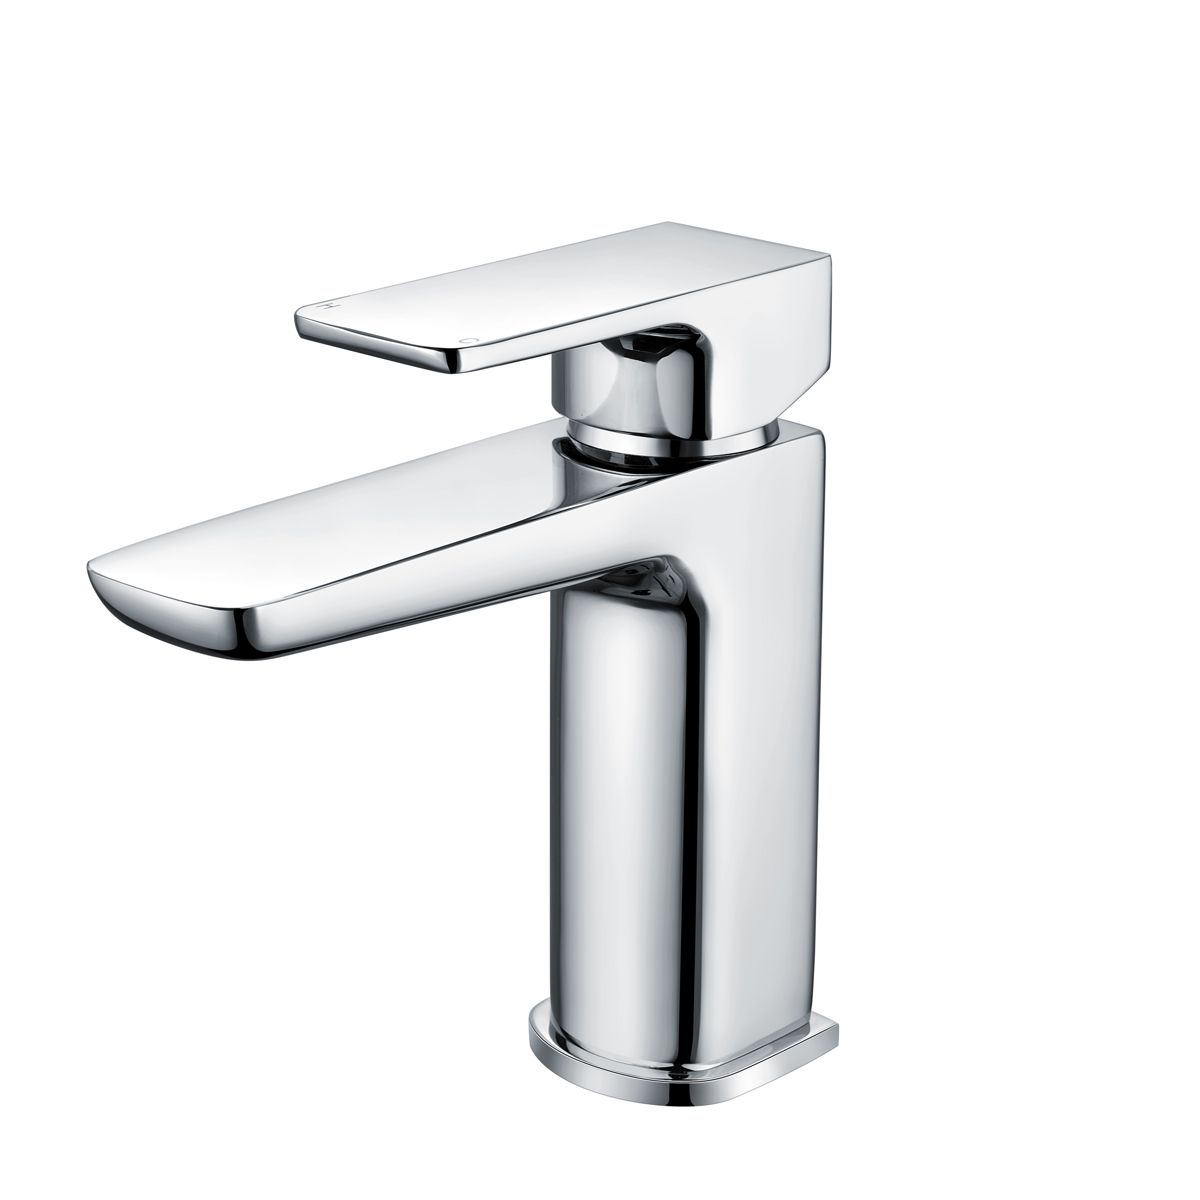 RAK Moon Chrome Mini Mono Basin Mixer Tap with Waste